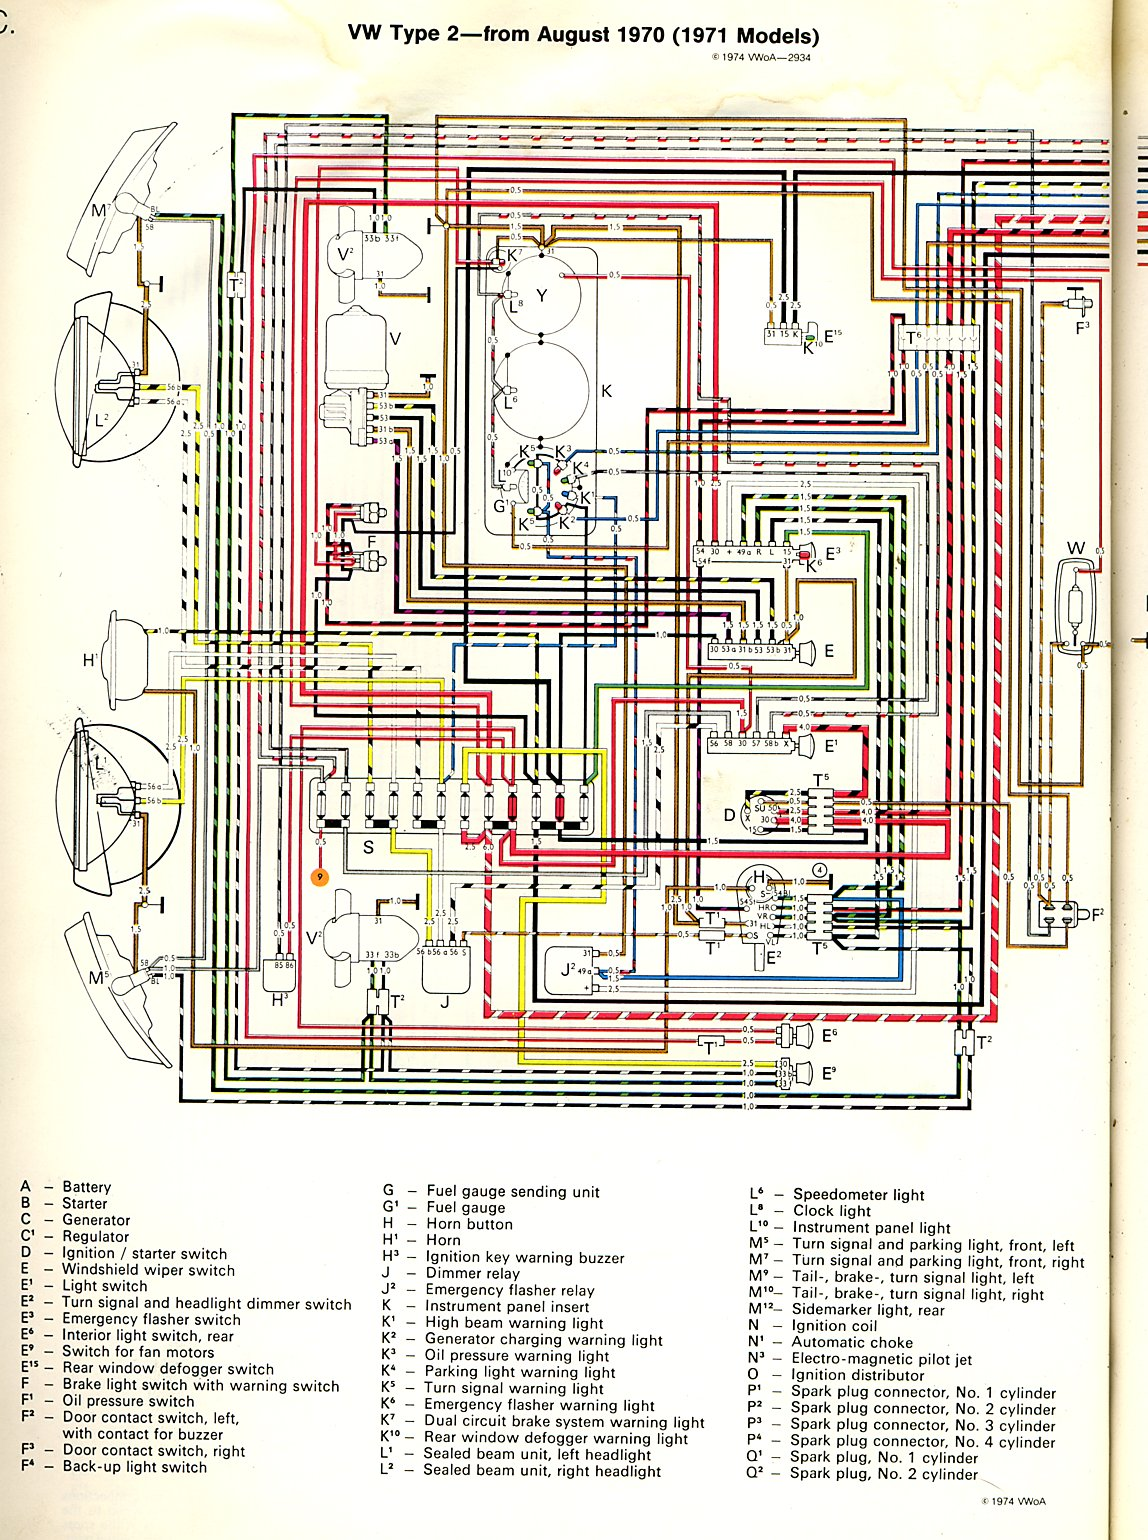 thesamba com type 2 wiring diagrams rh thesamba com VW 1970 Wiring-Diagram Electrical Wiring Diagrams